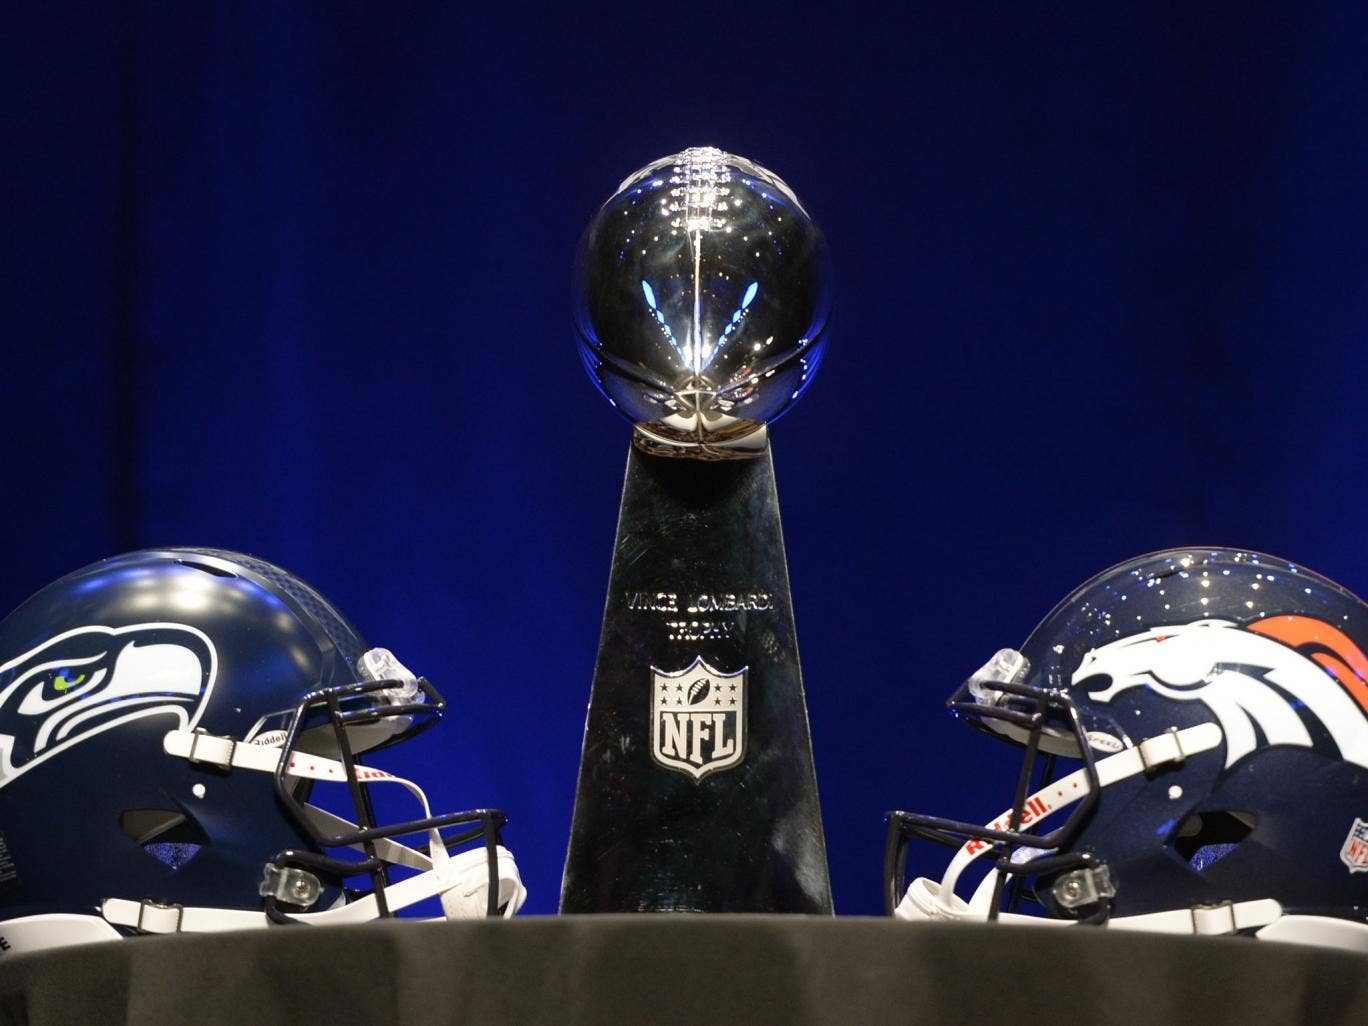 The Vince Lombardi Trophy and helmets for the Denver Broncos(R) and the Seattle Seahawks